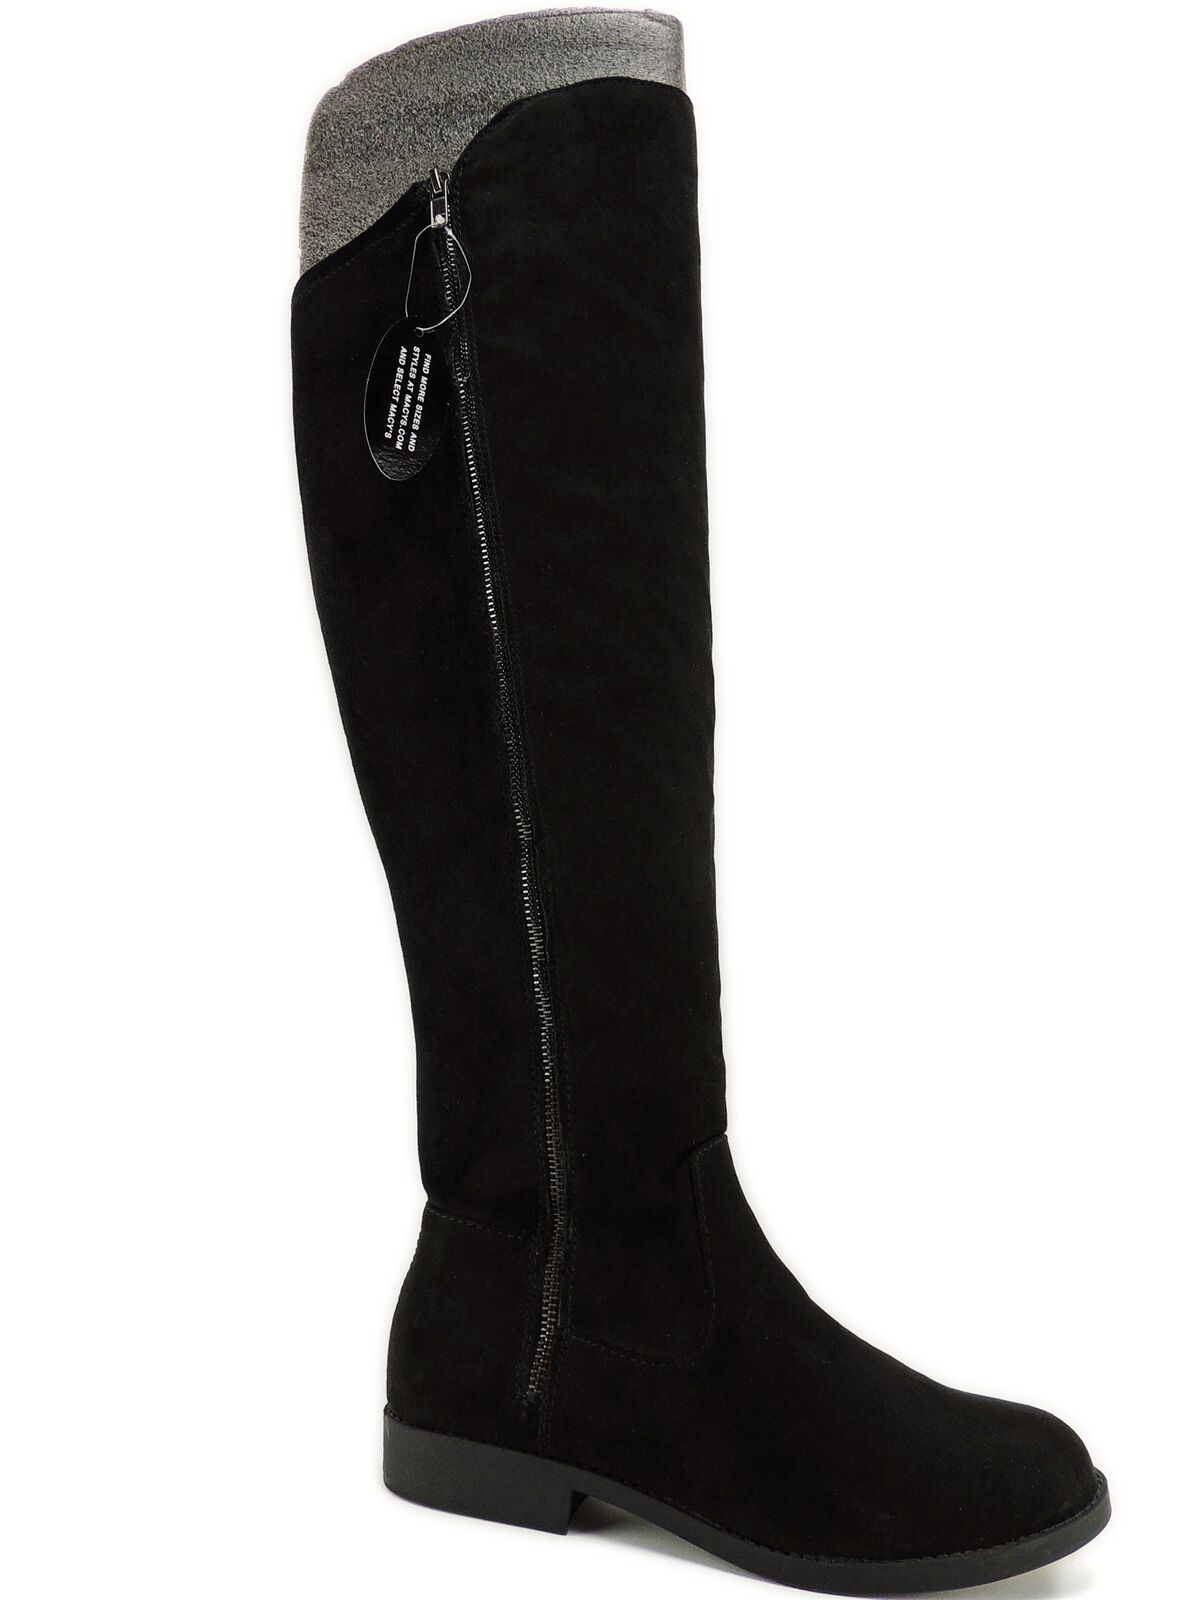 Style&co. Women's Hadleyy Over-the-Knee Boots Black Size 8.5 M